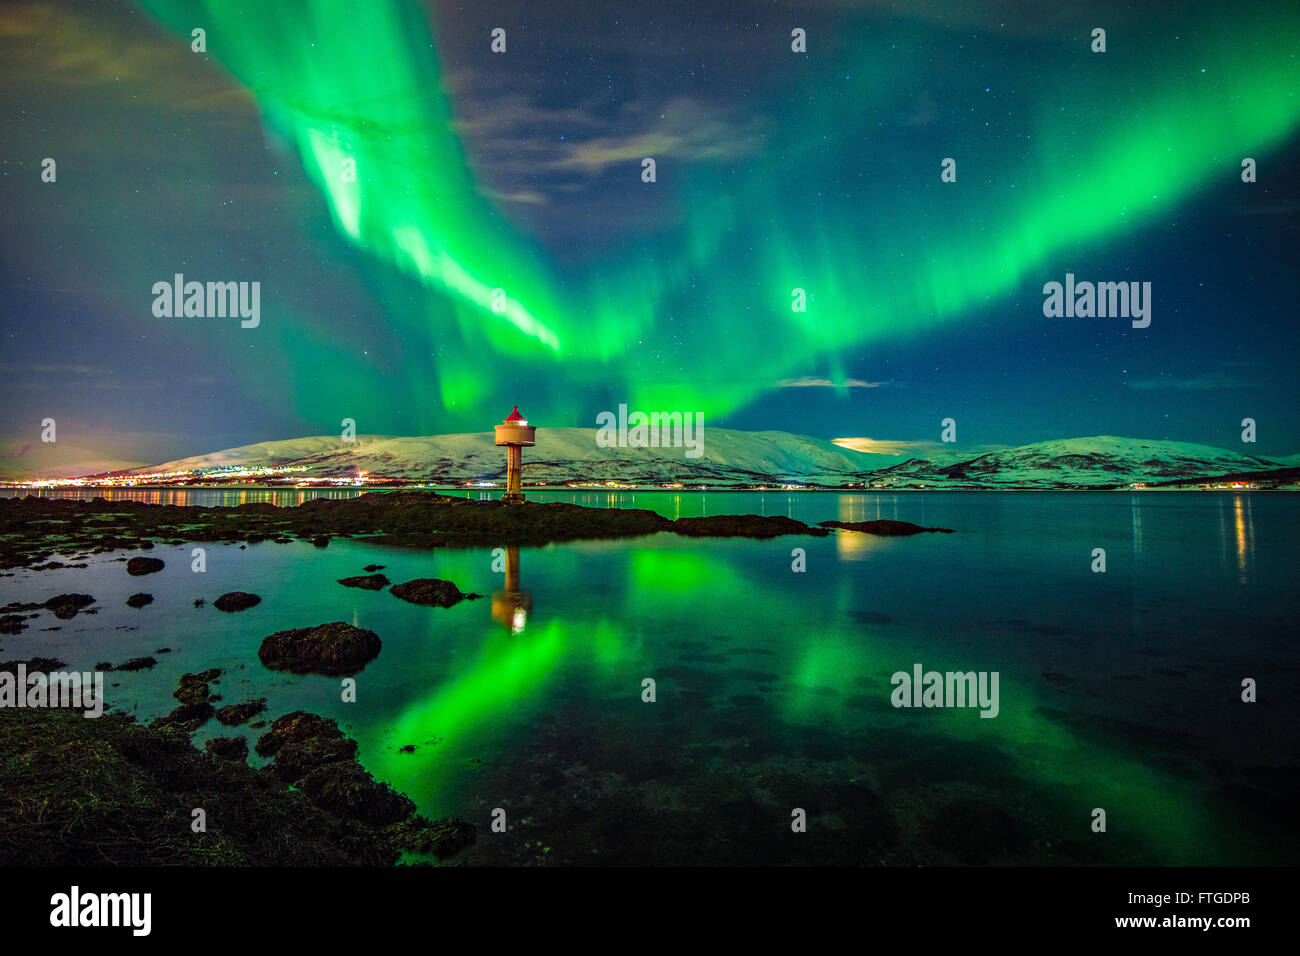 Aurora Borealis dancing over fjord, Tromso Northern Norway Stock Photo